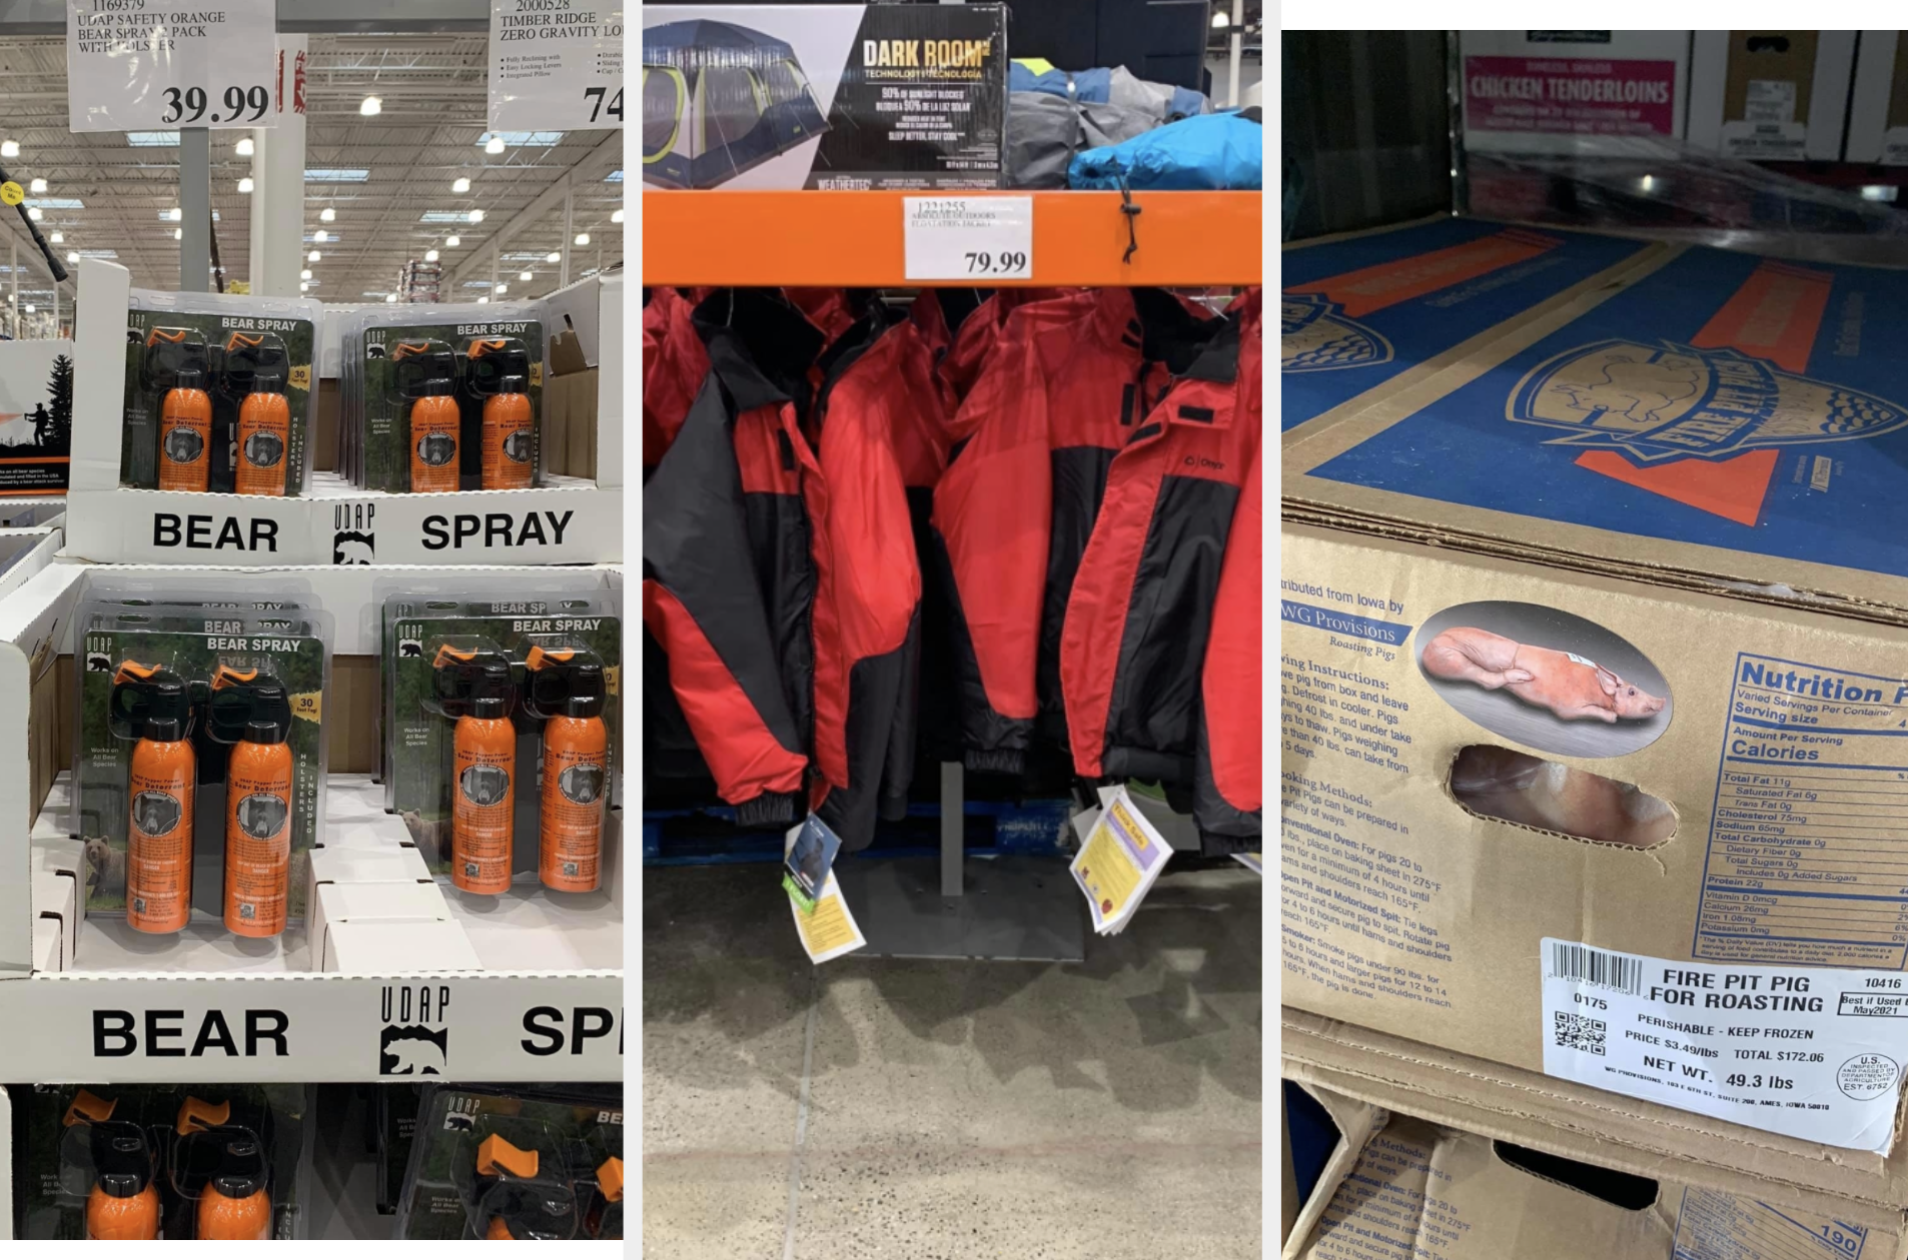 Bear spray, float coats, and whole-roasted pigs at Costco in Alaska.